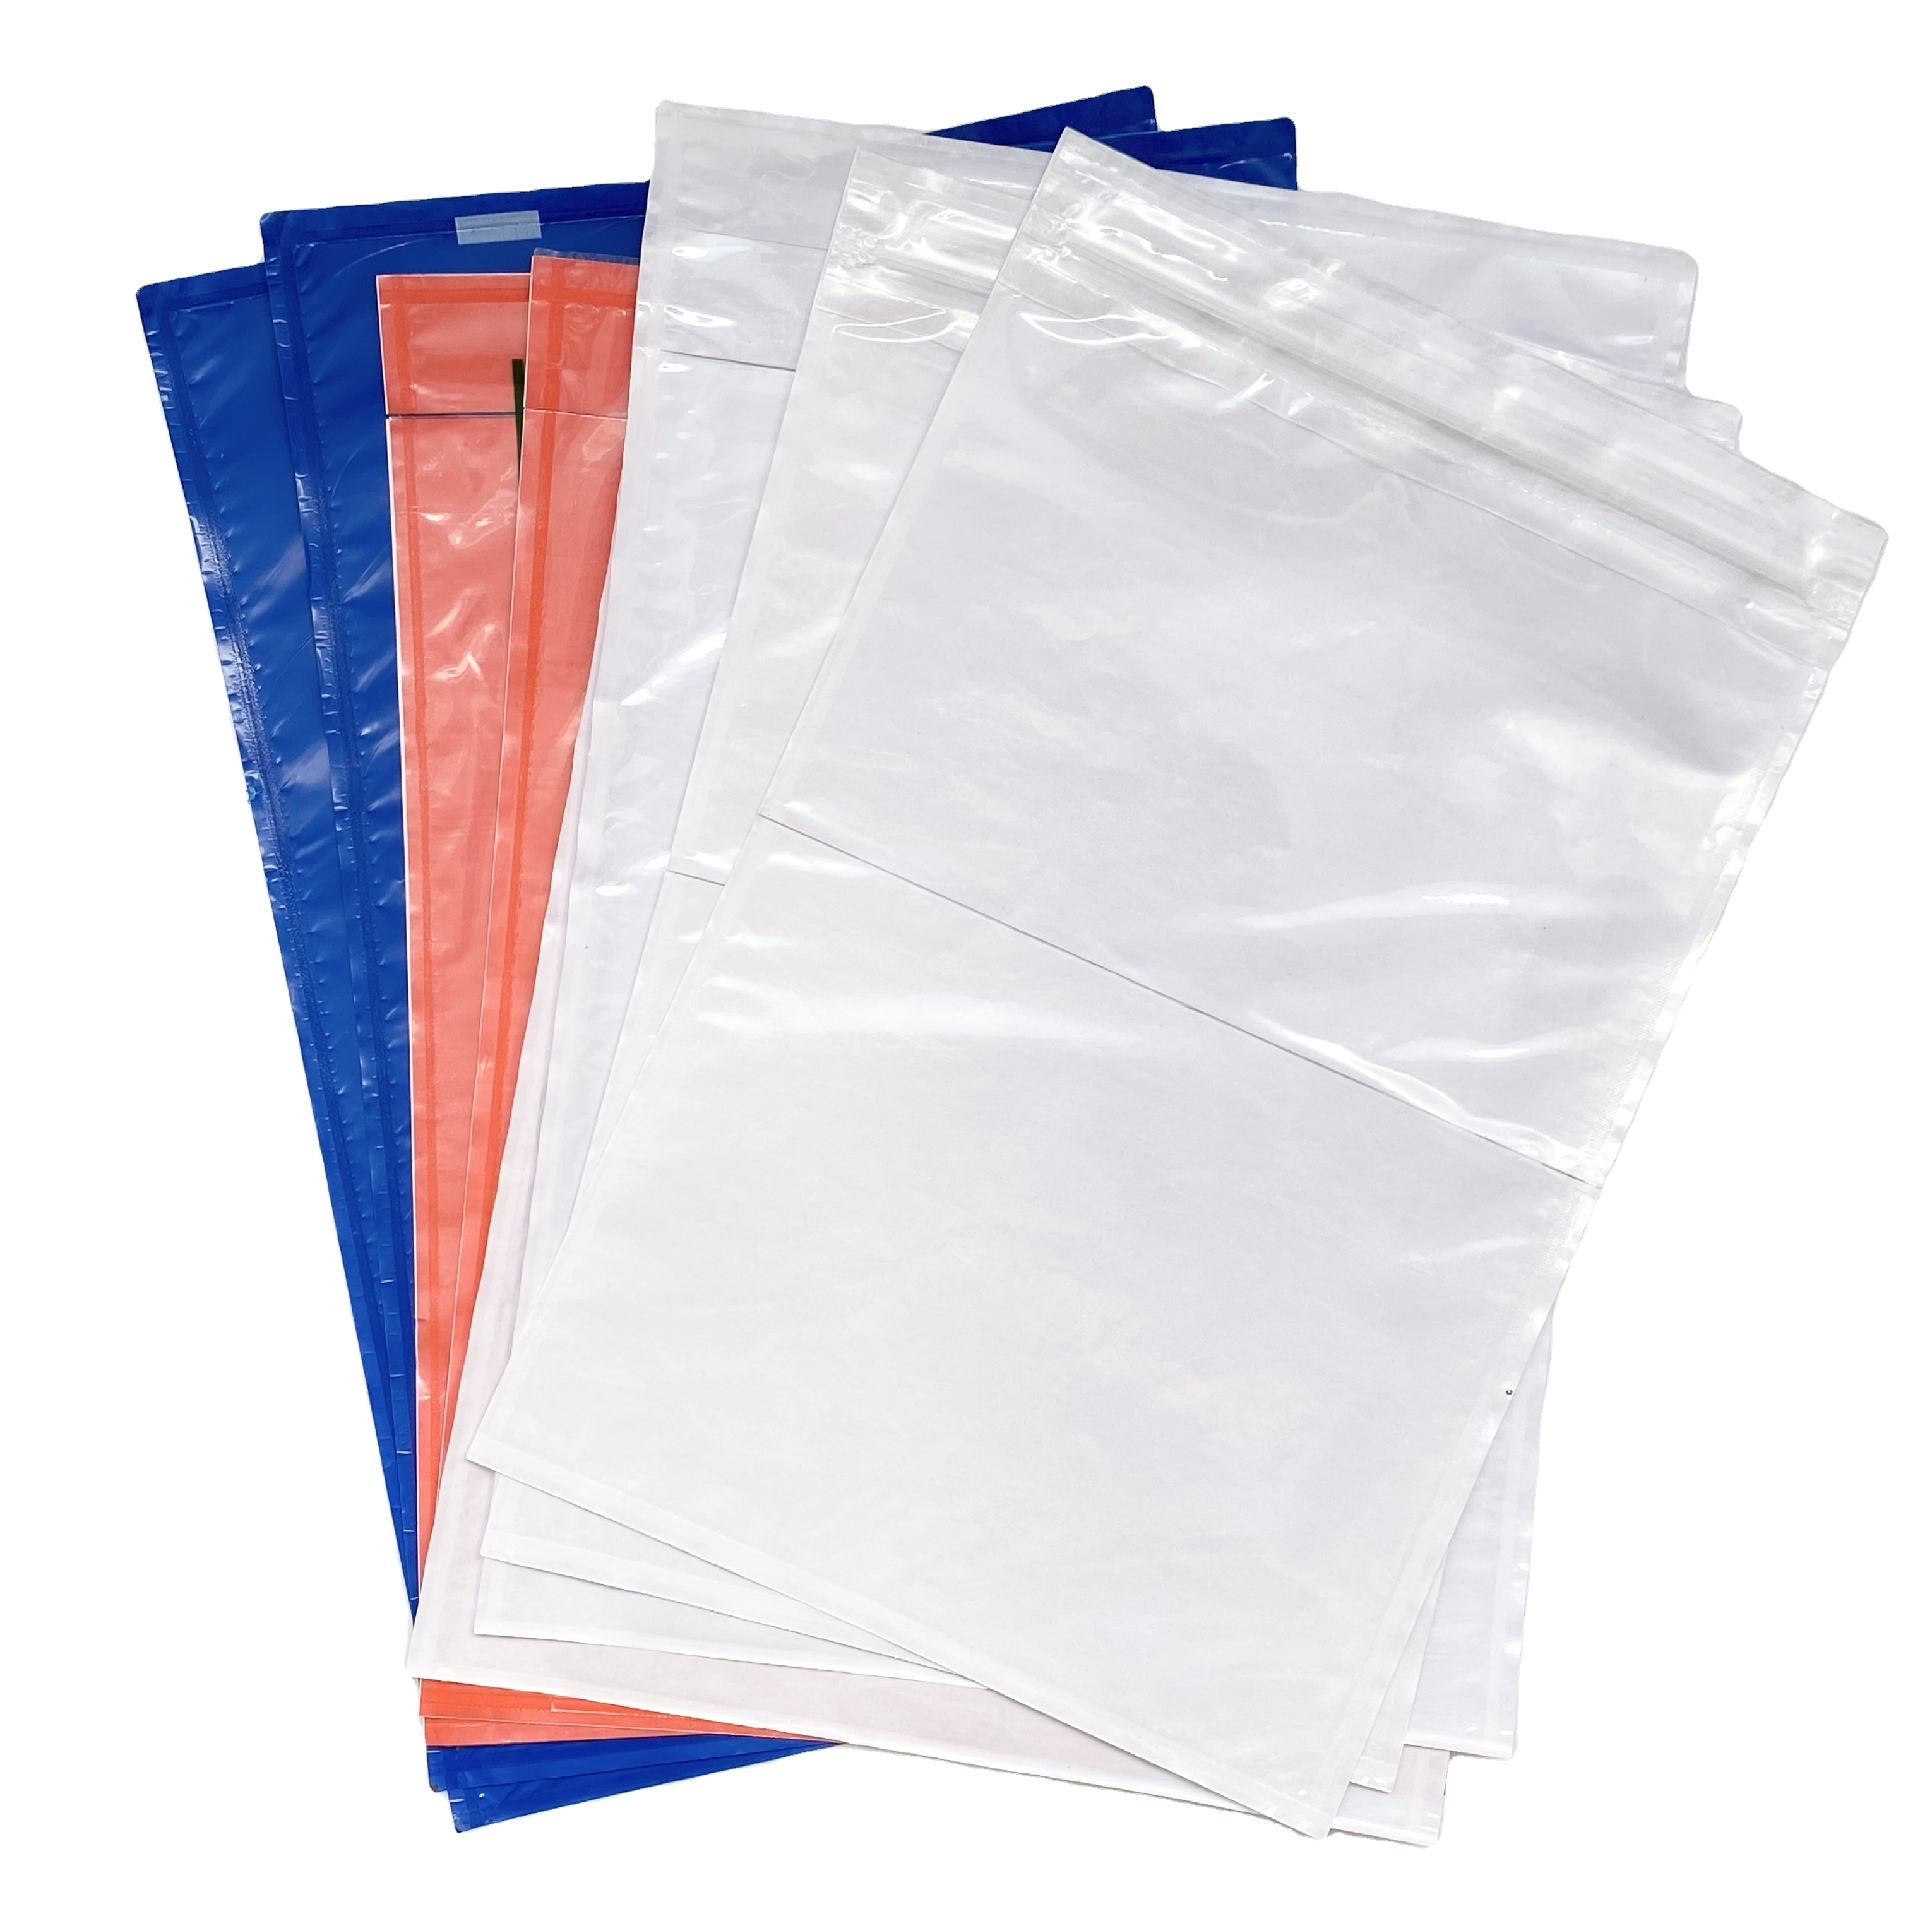 Courier waterproof Enclosed Plastic Mailing Bag Express Shipping Envelope Self-adhesive Packing List